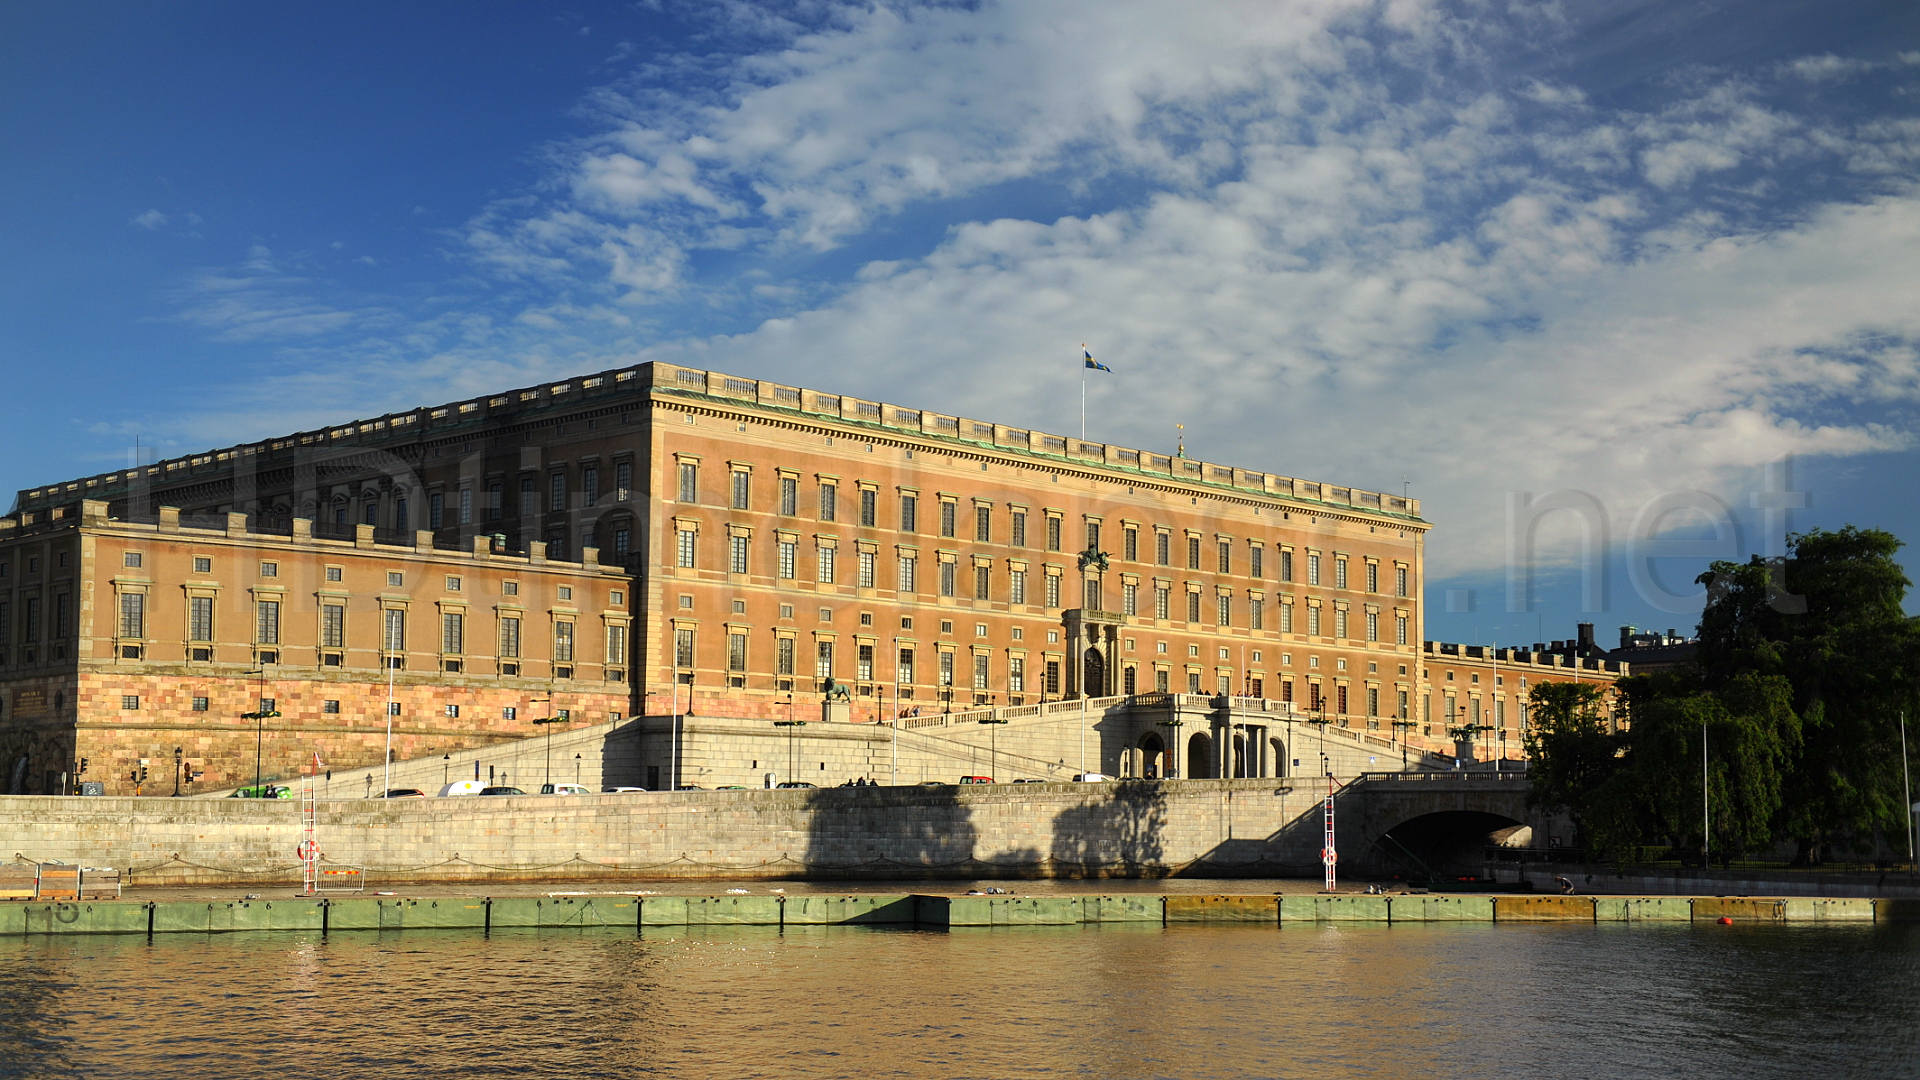 Historical Architecture: Stockholm Royal Palace - Stock Image I3361245 at  FeaturePics